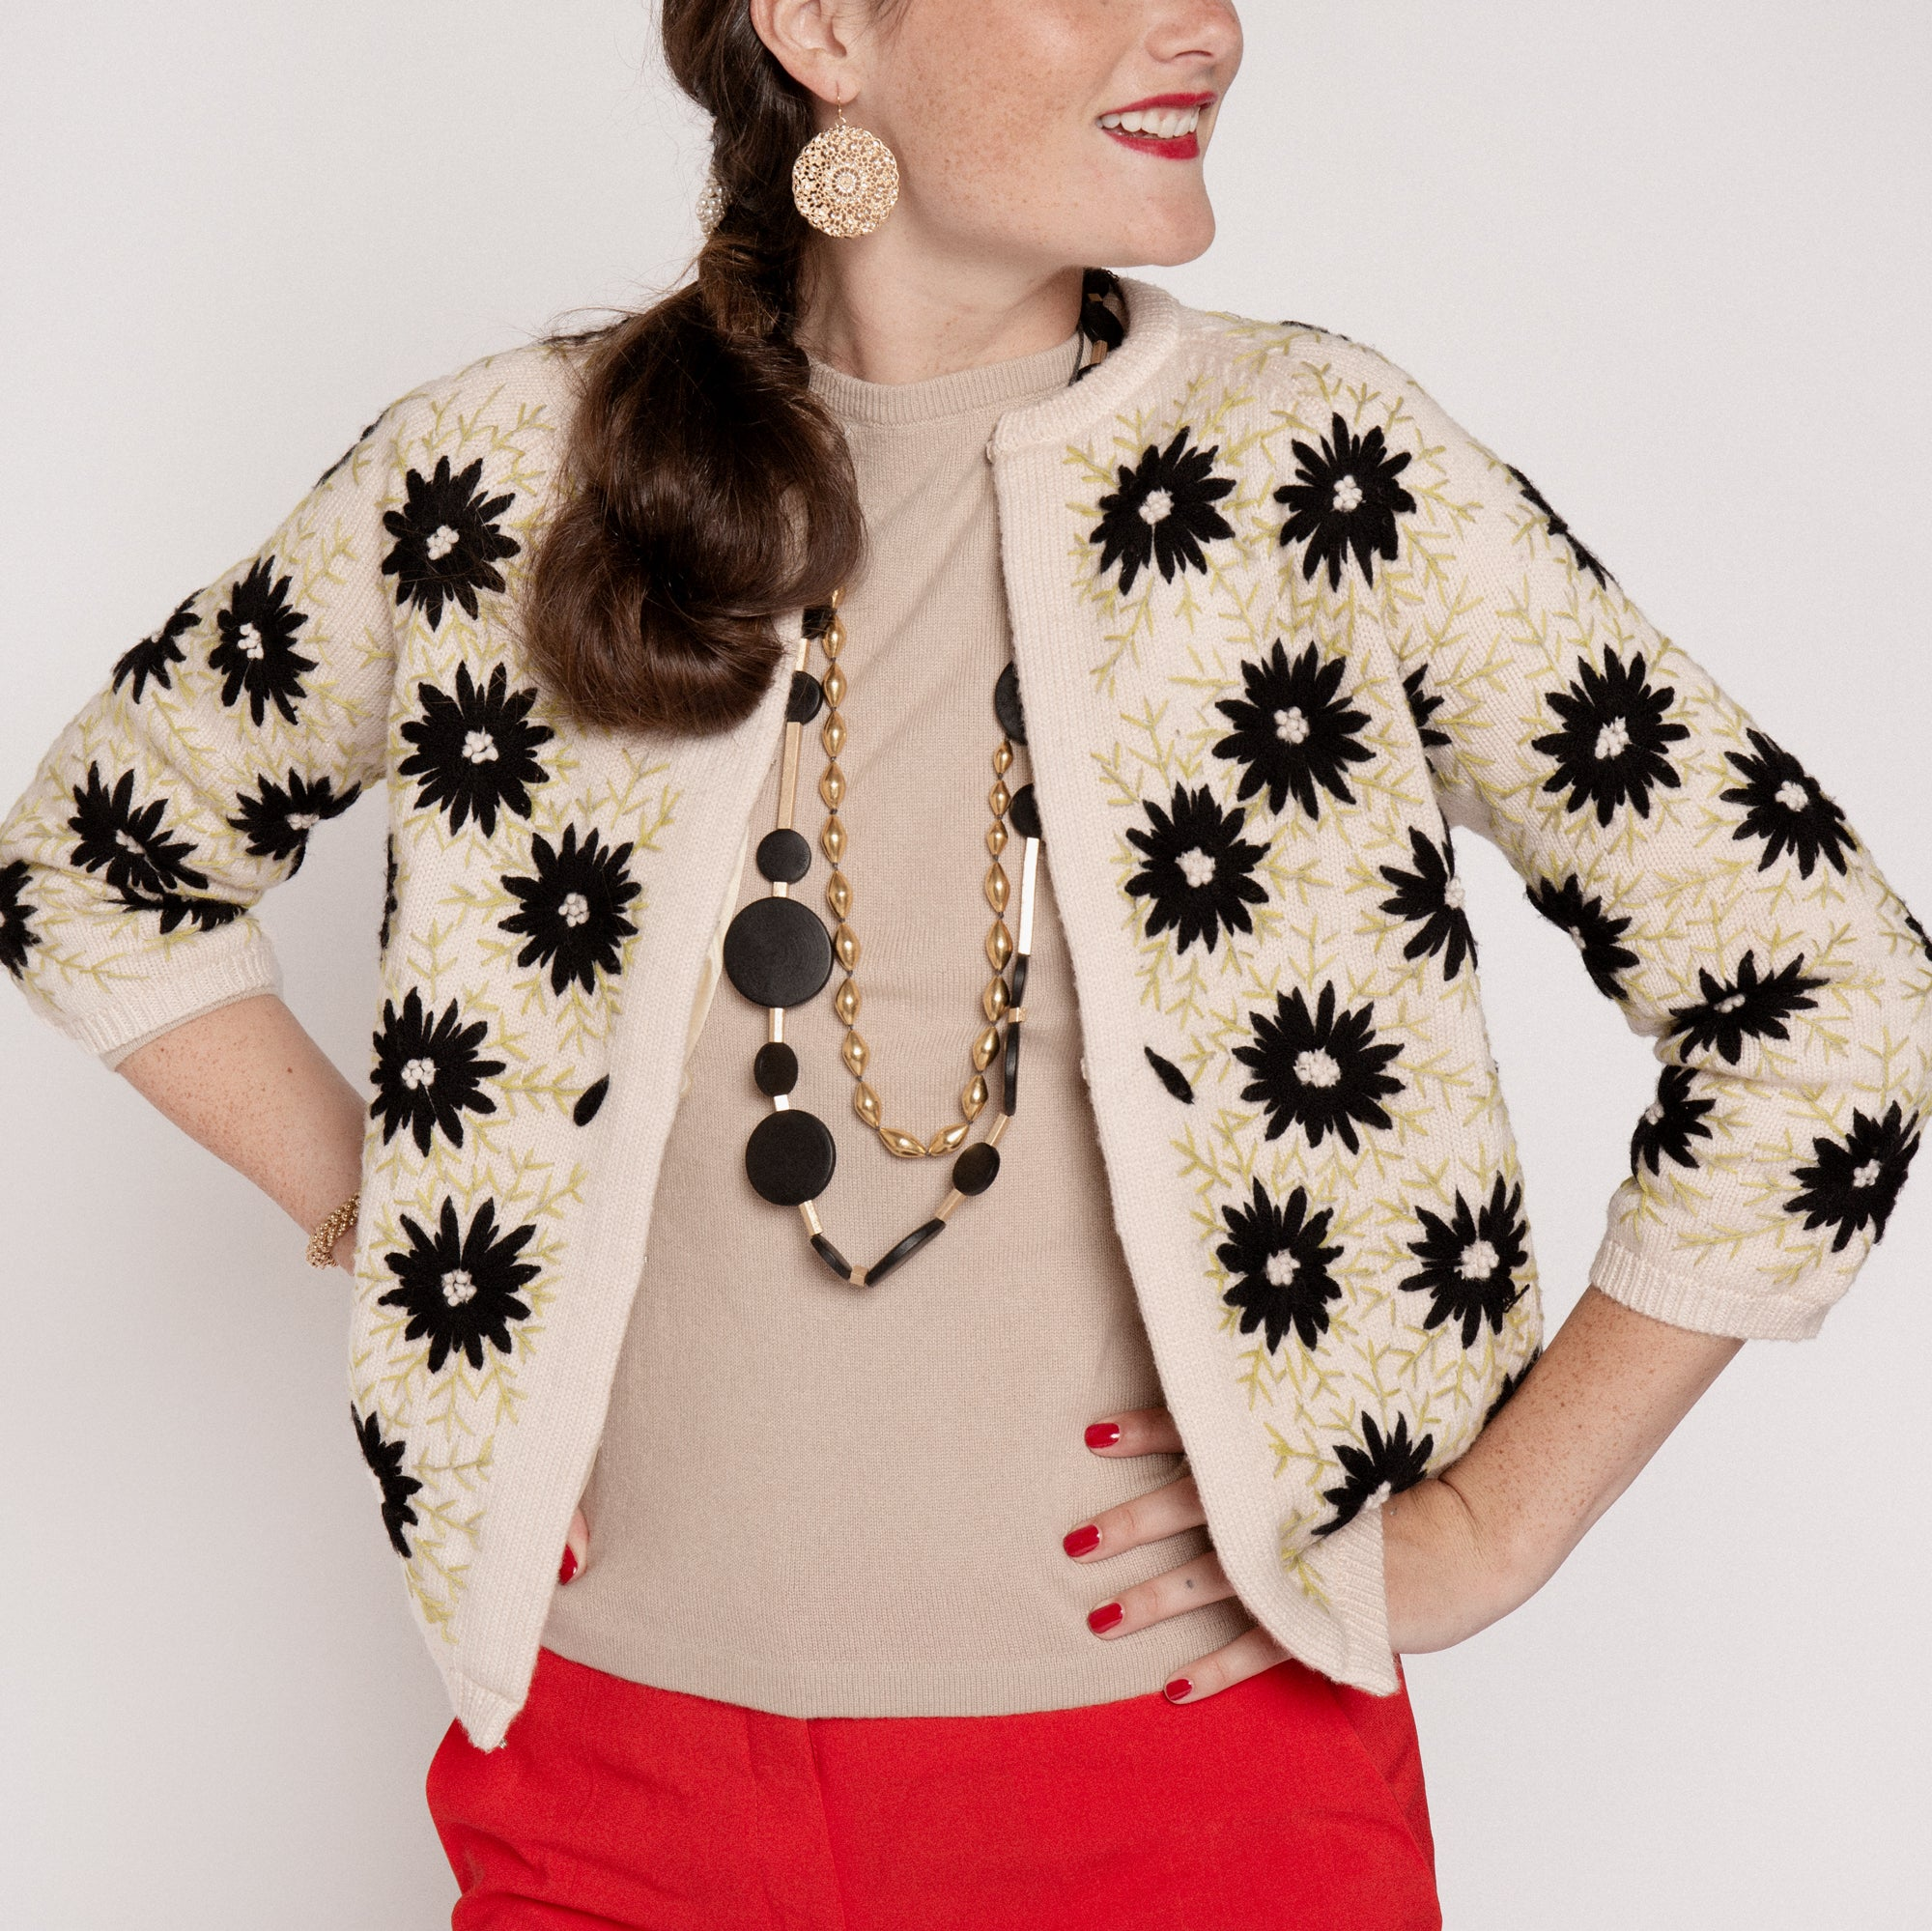 Katy's Flower Cardi Coat Black